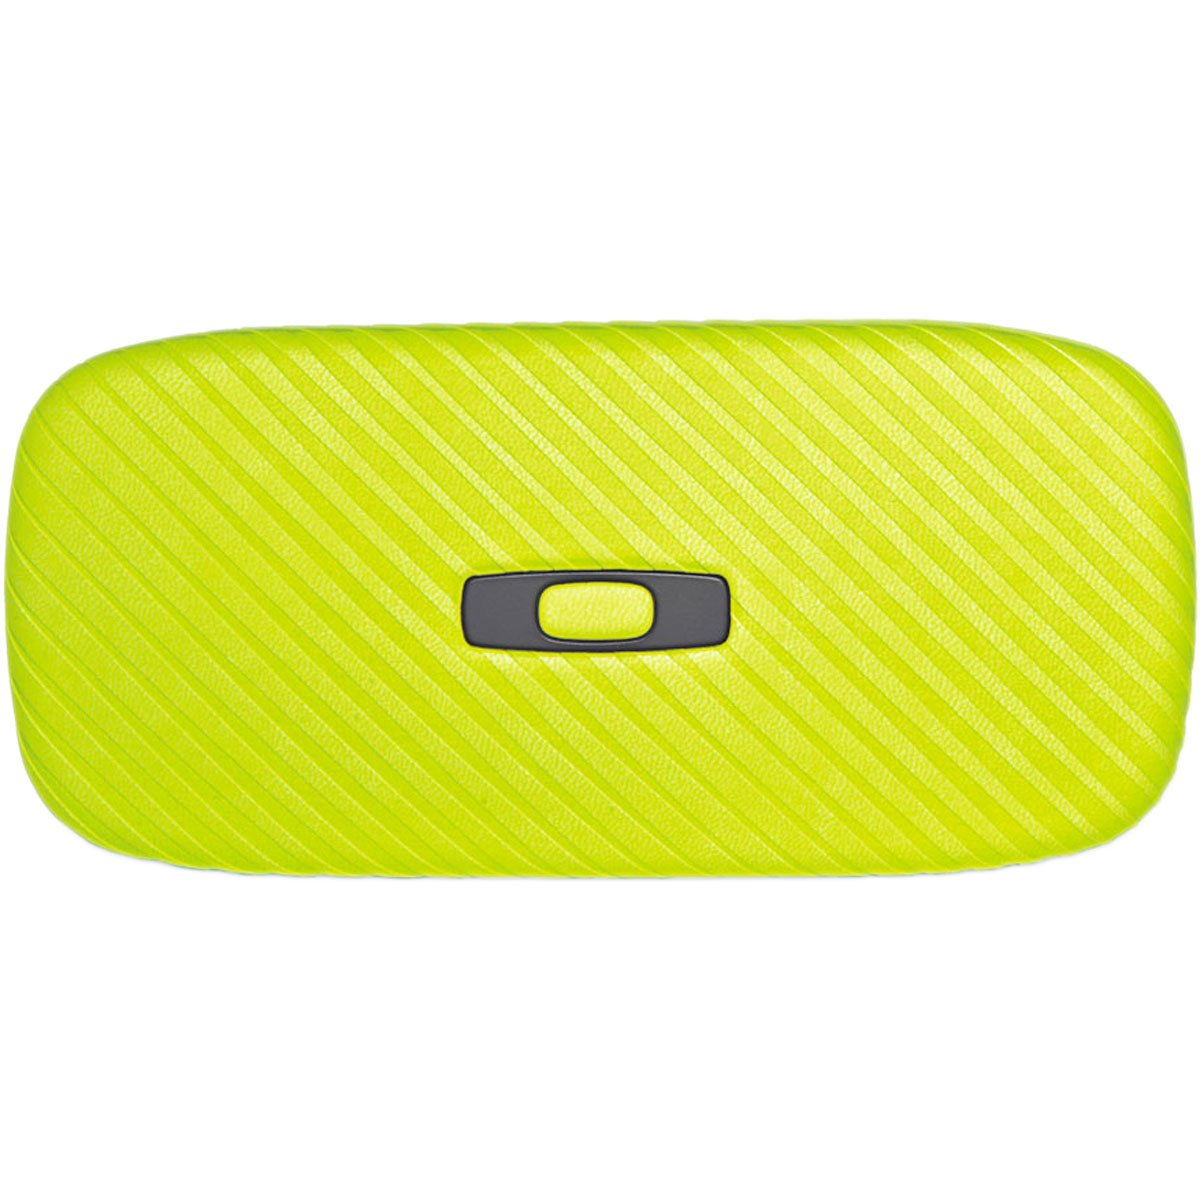 Oakley Square O Hard Adult Storage Case Sunglass Accessories - Neon Yellow/One Size